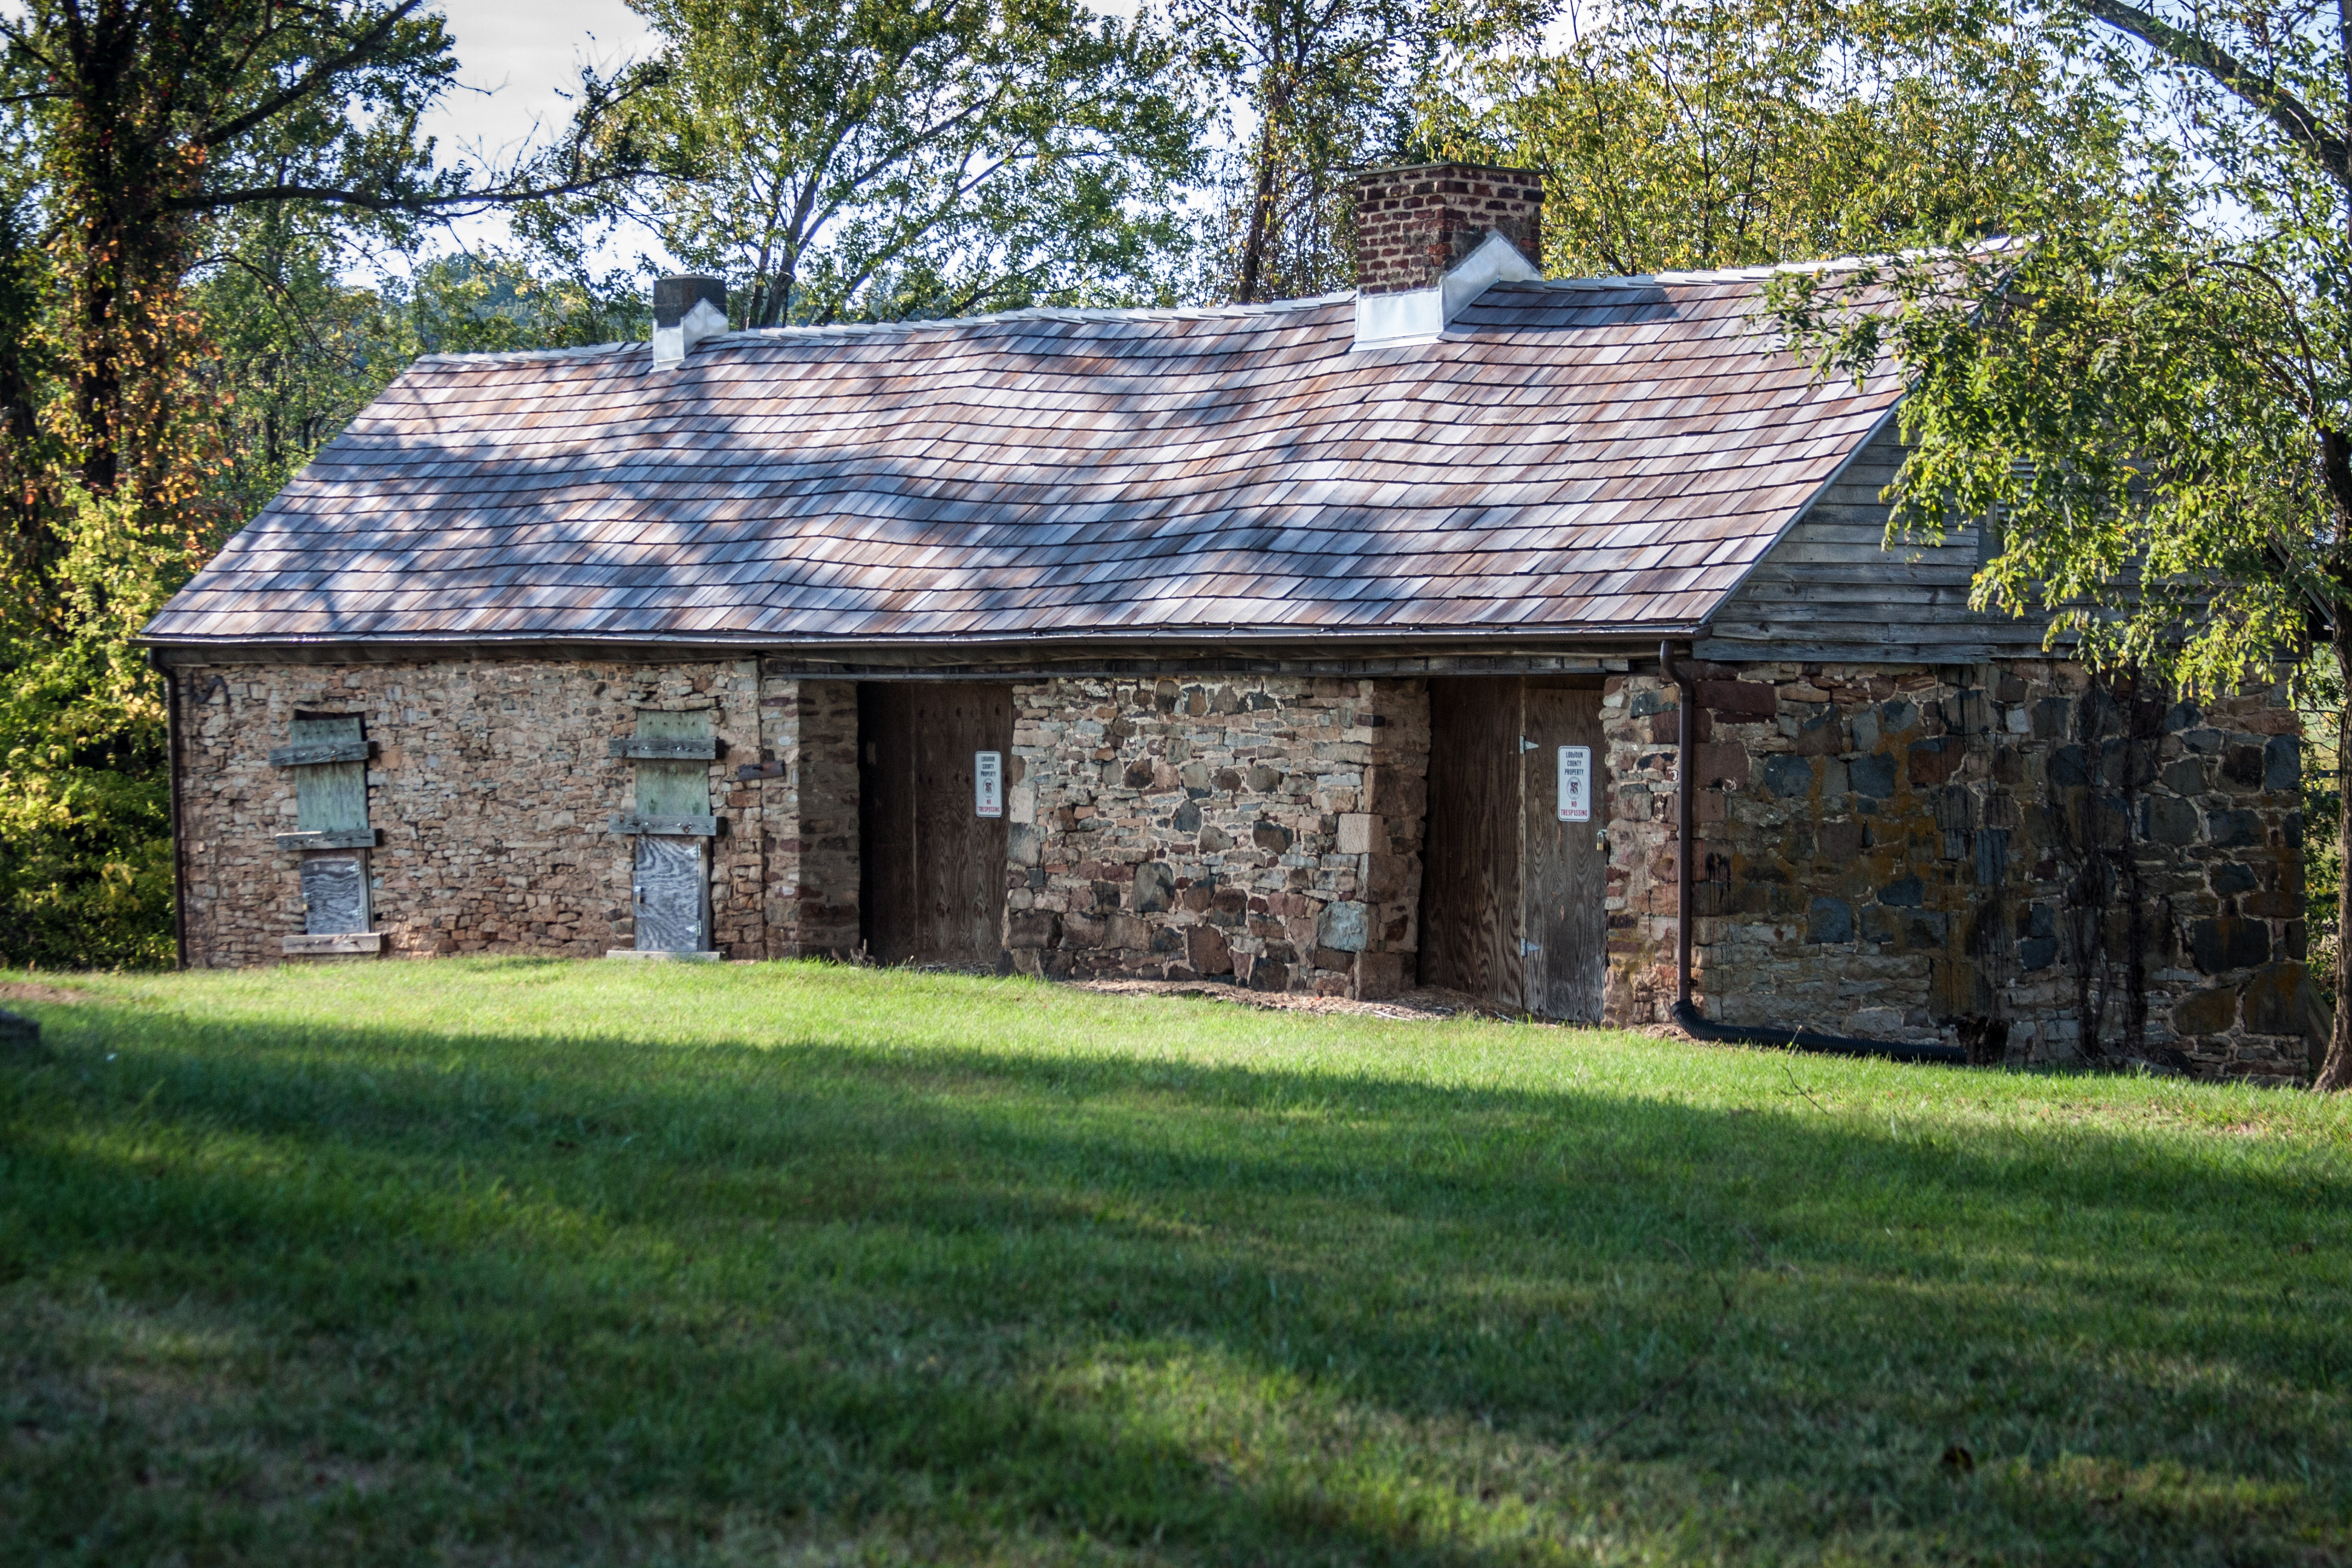 A view of some of the slave quarters in 2012 ((By Cecouchman (Own work) [CC BY-SA 3.0 (http://creativecommons.org/licenses/by-sa/3.0)], via Wikimedia Commons))